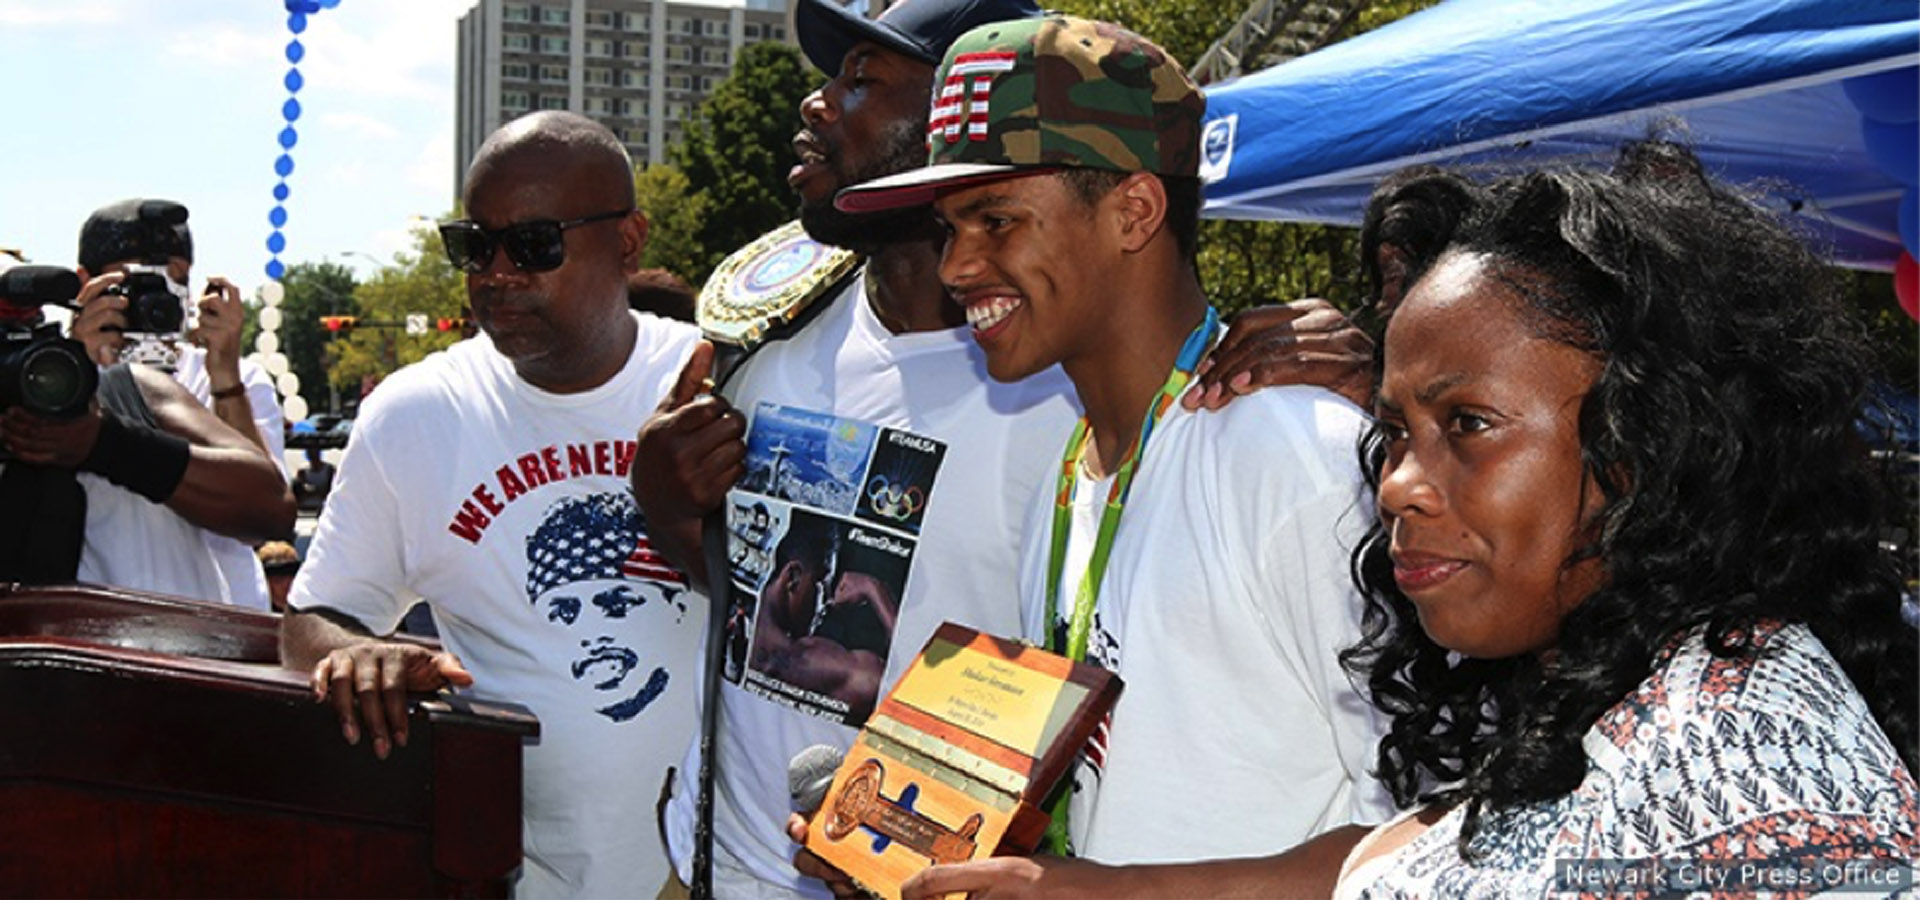 """Shakur Stevenson is joined at a parade in his honor by the Mayor of Newark, Ras Baraka (L); Stevenson's father, Shahid (2nd L); and mother, Malikah (R) on Aug. 28, 2016 in Newark, N.J.."" Photo by    Newark City Press Office   ."